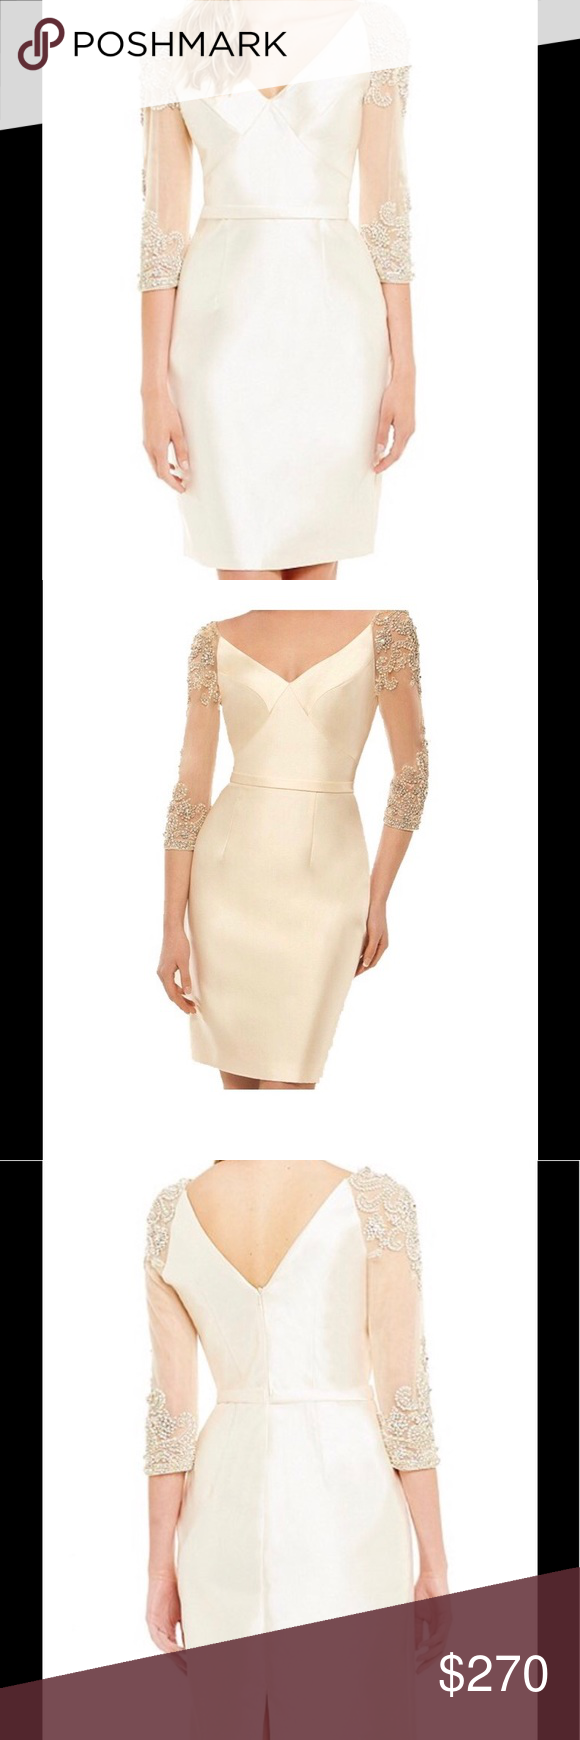 Event/Special Occasion Dress portrait neckline 3/4 sheer embellished crystal and pearl sleeves seam detailed bodice tailored mikado pencil skirt back zipper closure polyester hand wash Lasting Moments Dresses Wedding